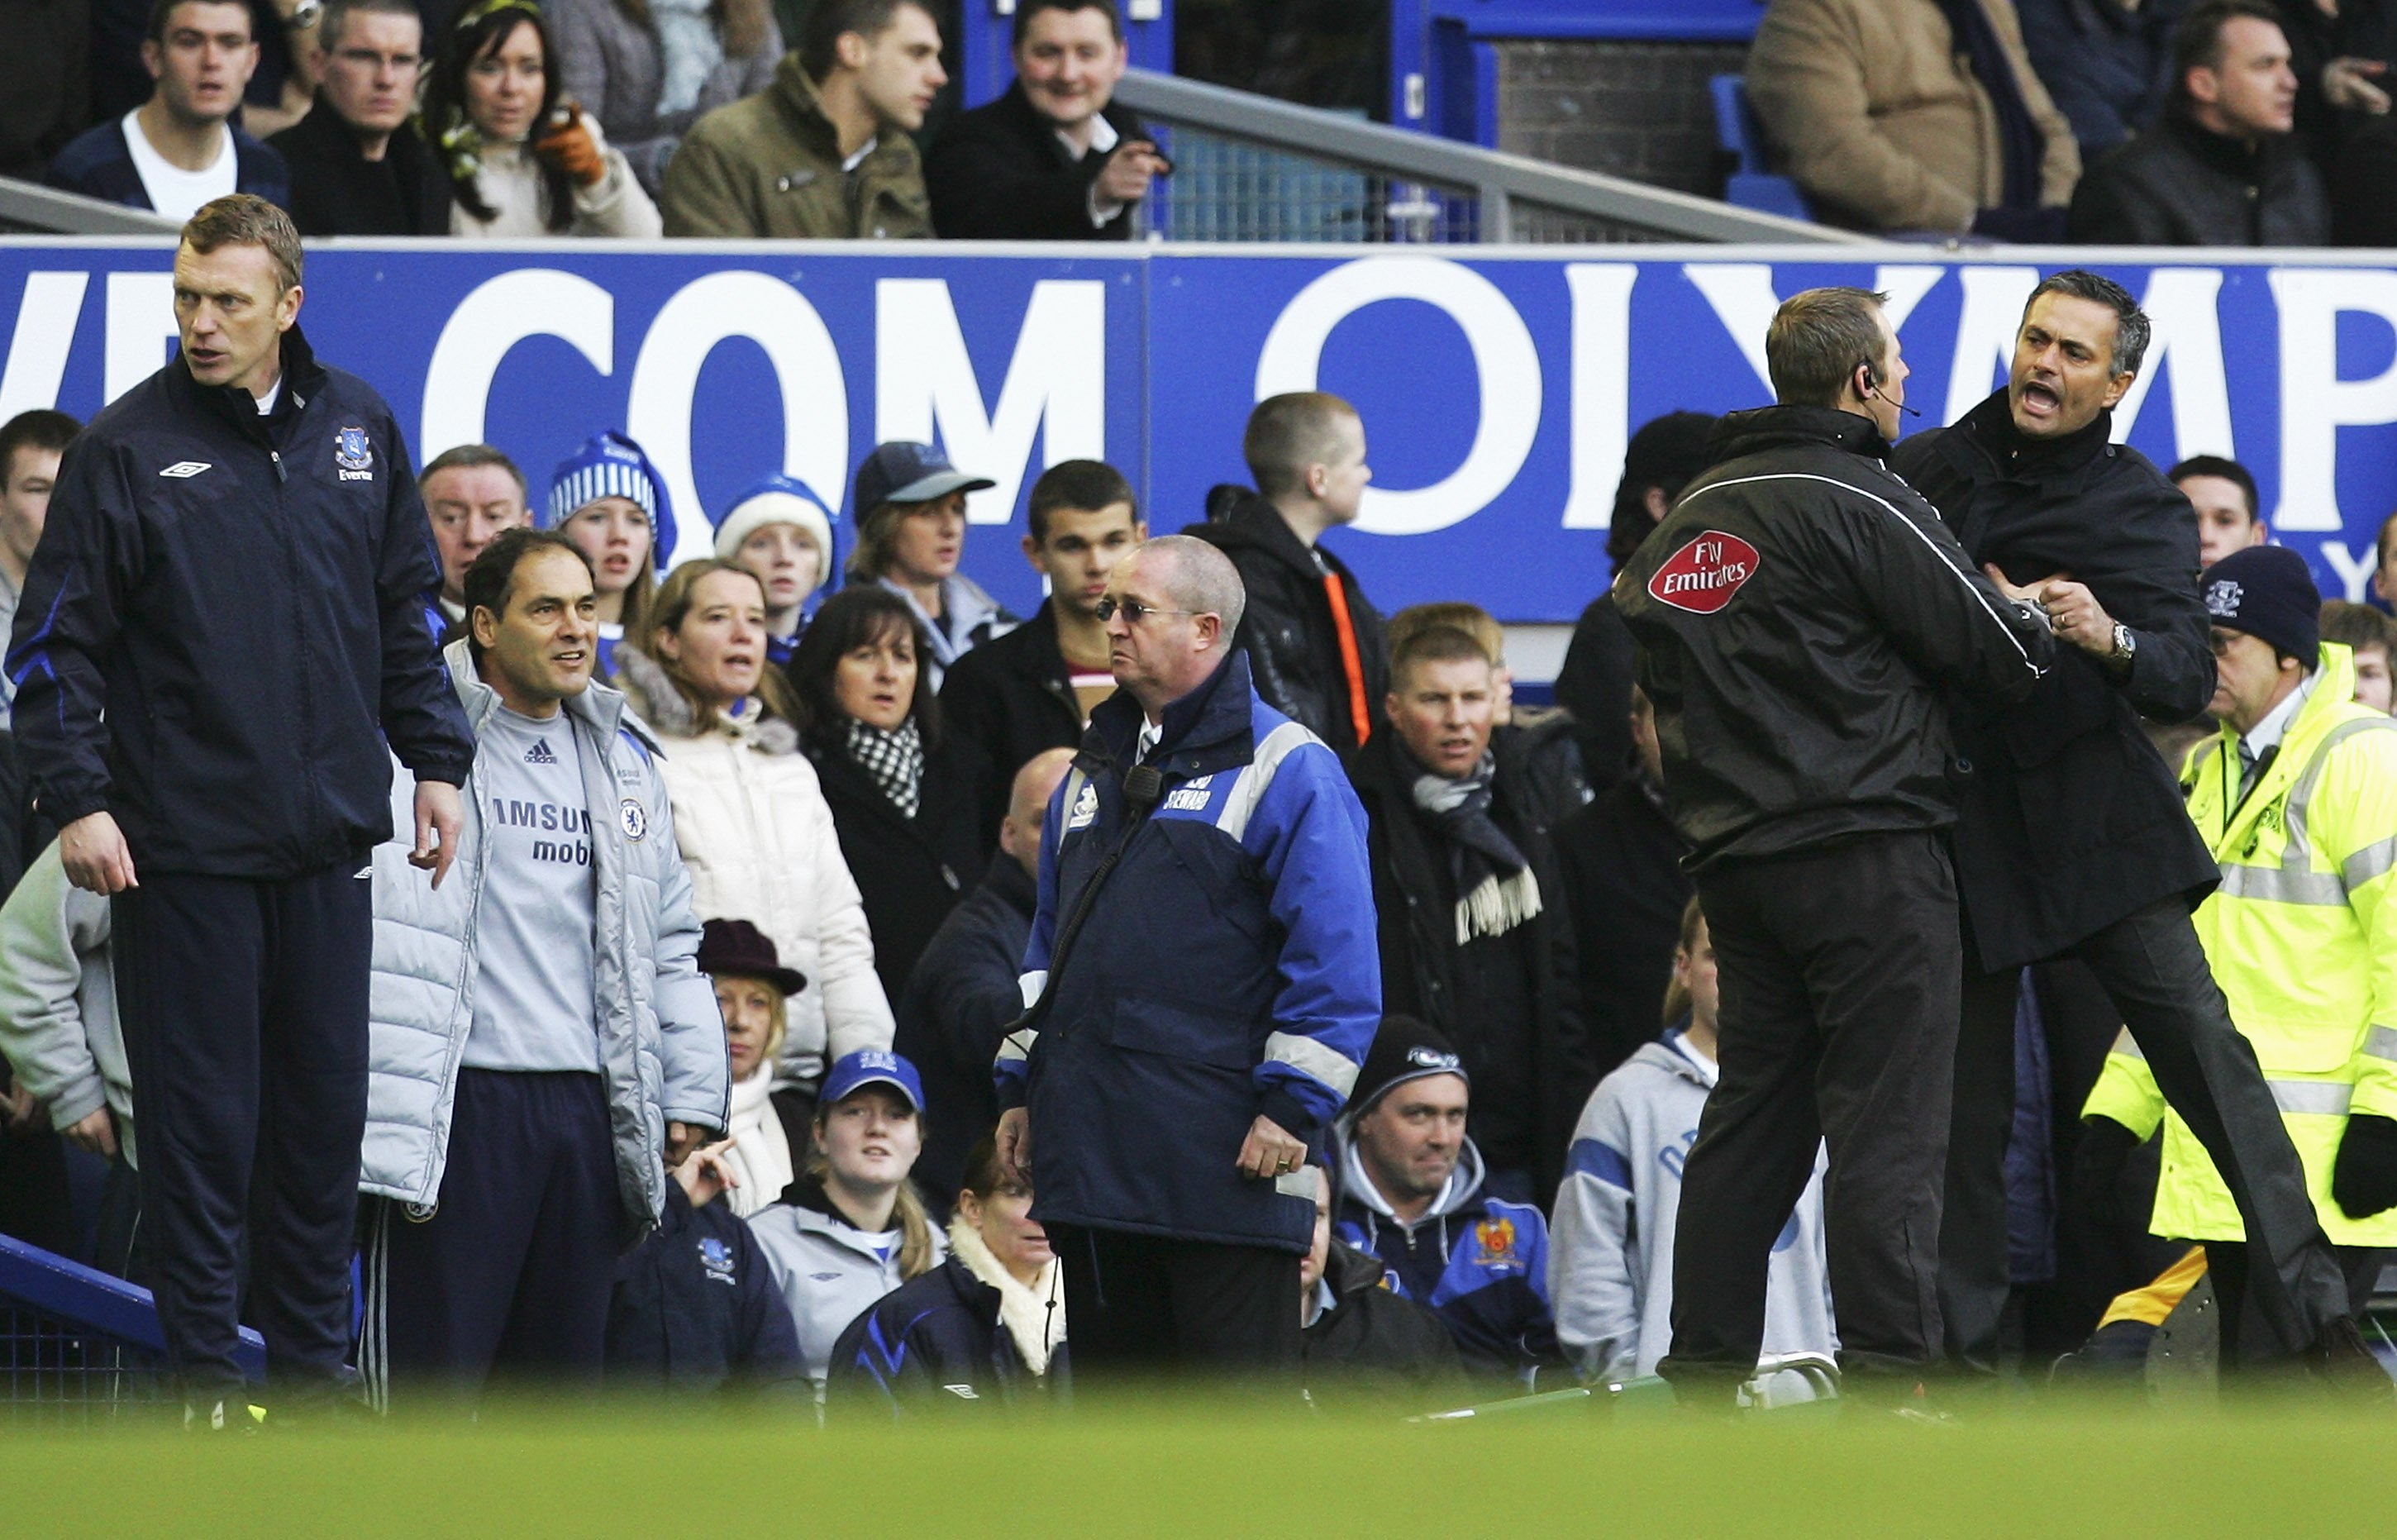 Jose Mourinho gets held back from David Moyes when Chelsea beat Everton in December 2006